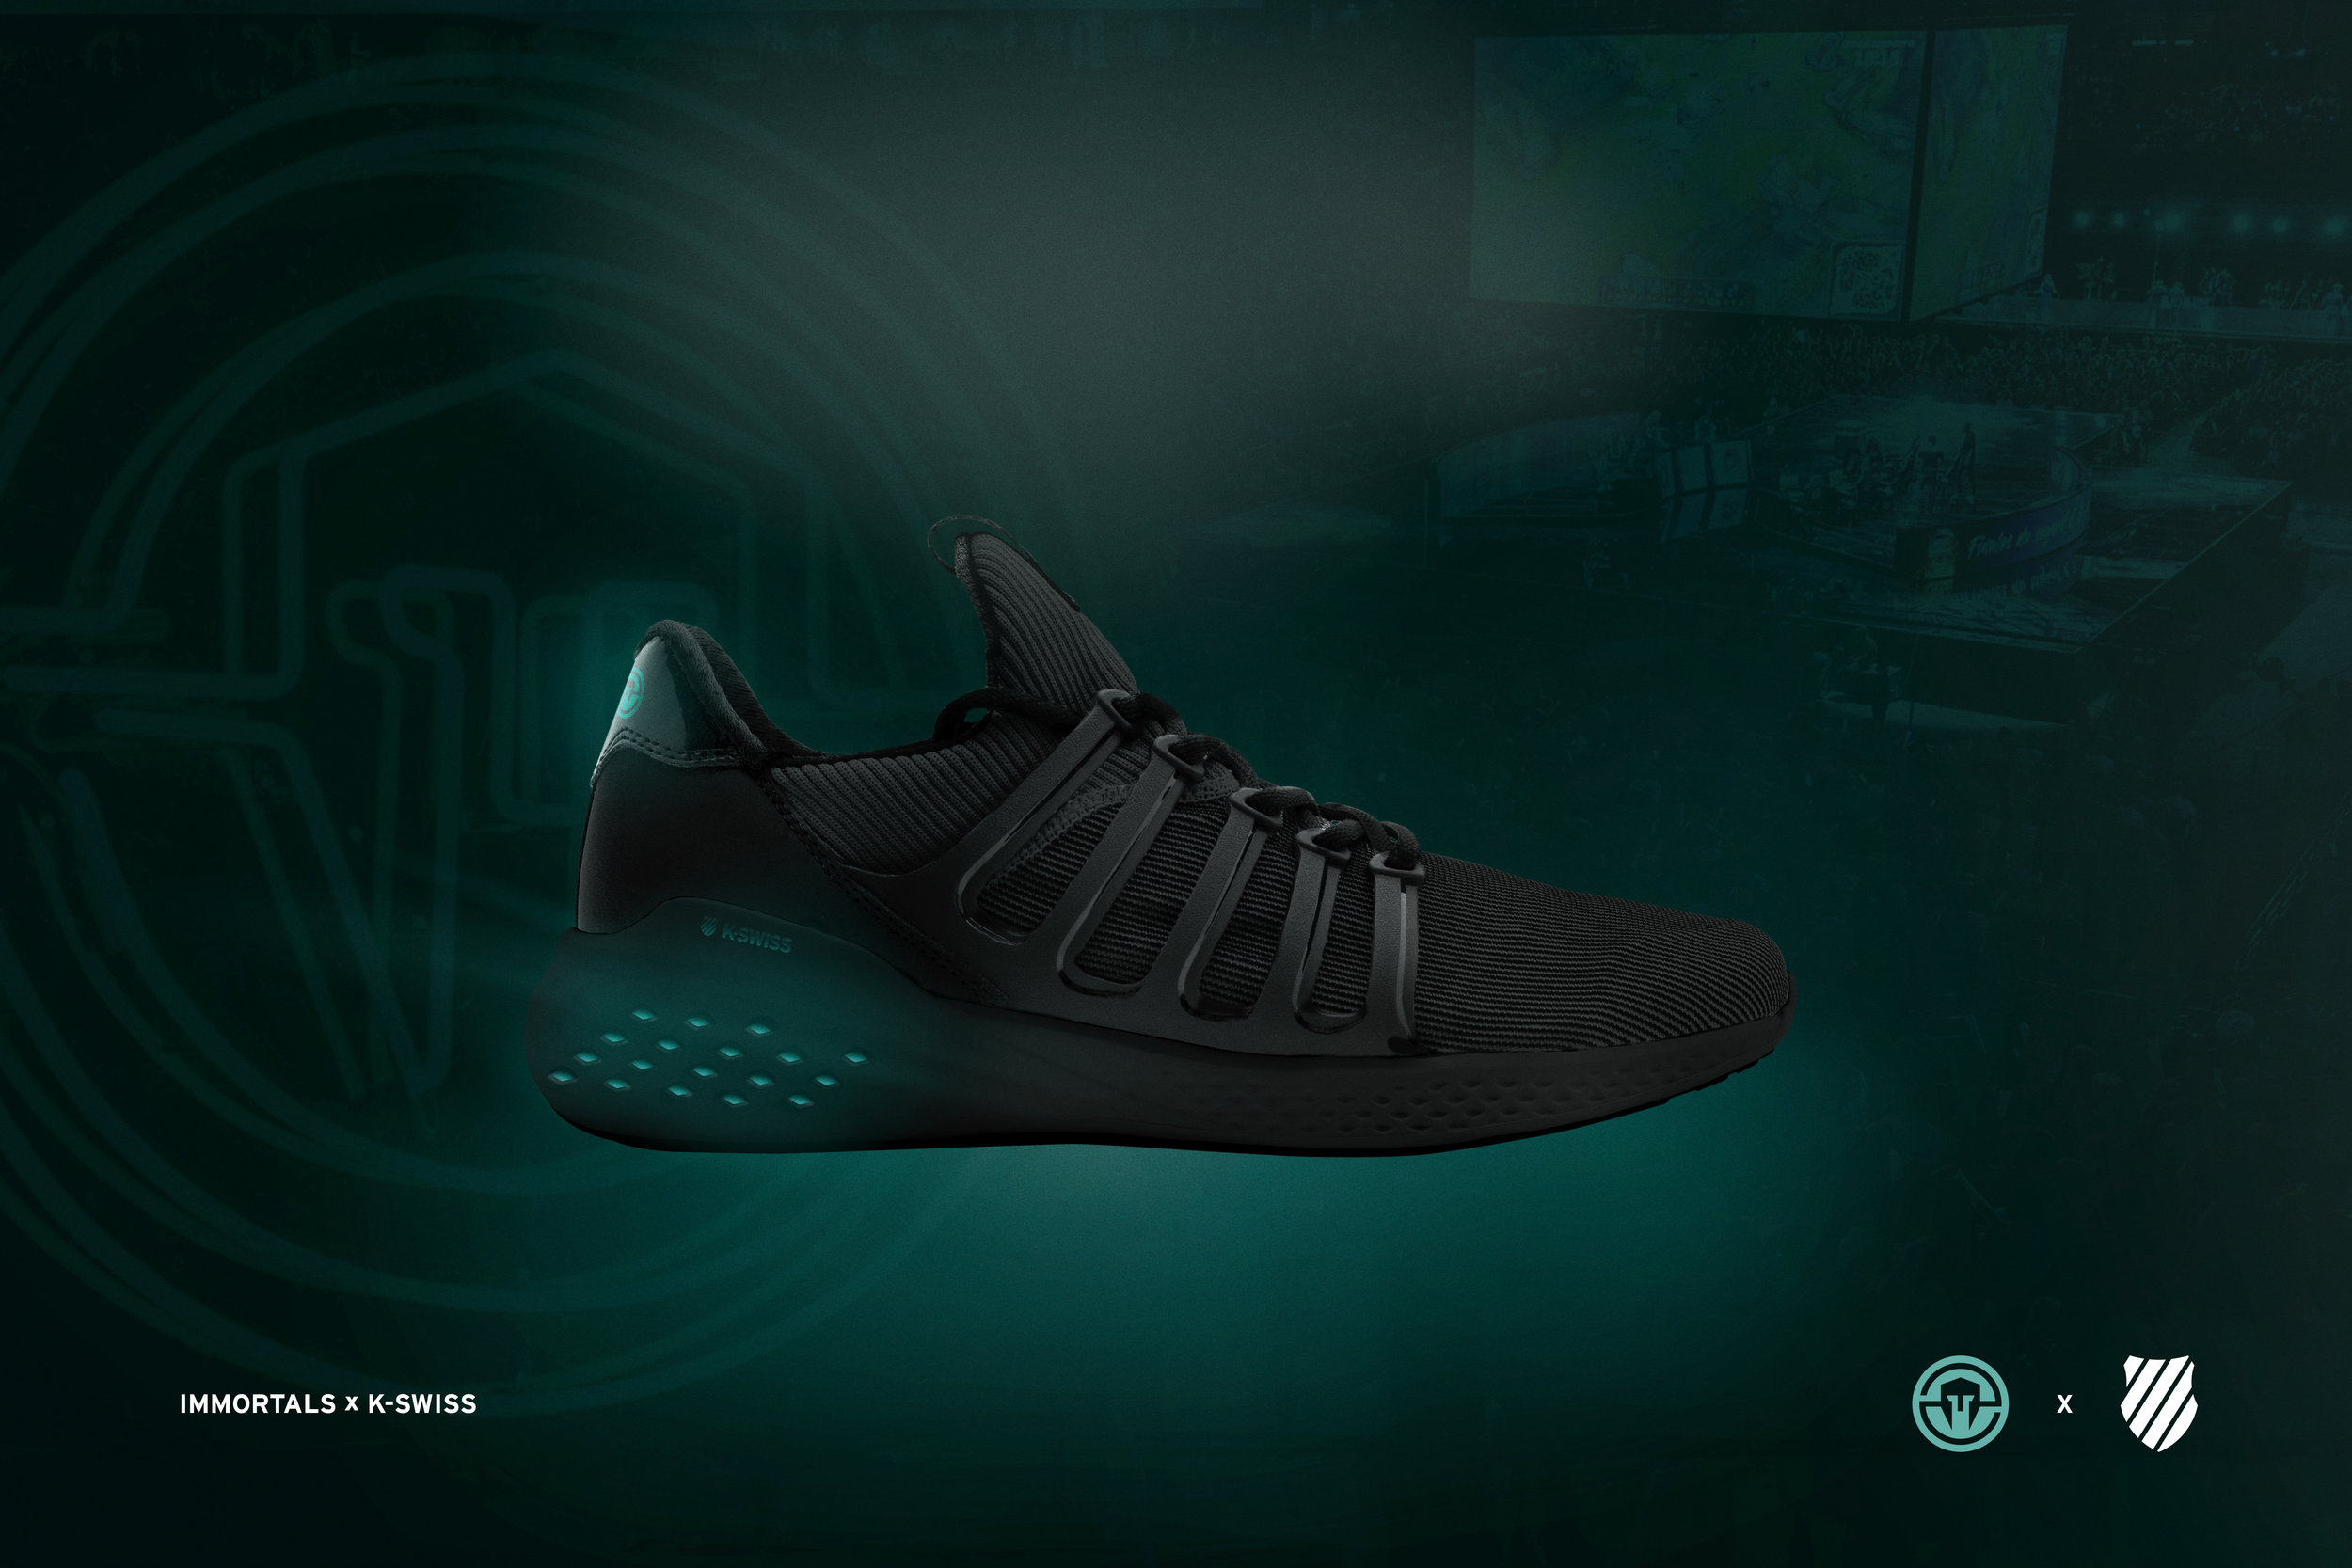 Photo: Immortals x K-Swiss